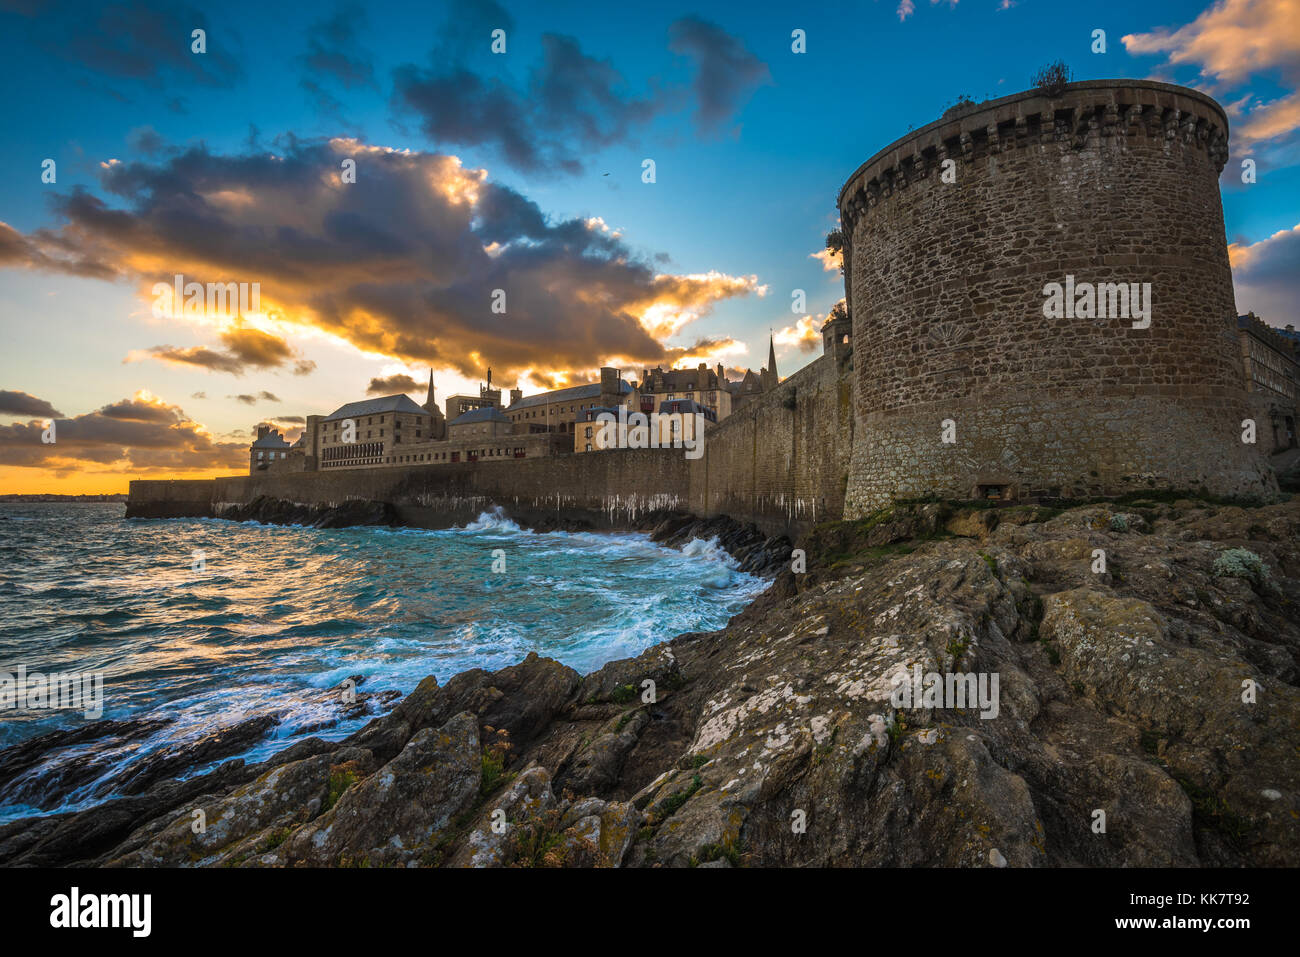 Saint-Malo, historic walled city in Brittany, France - Stock Image